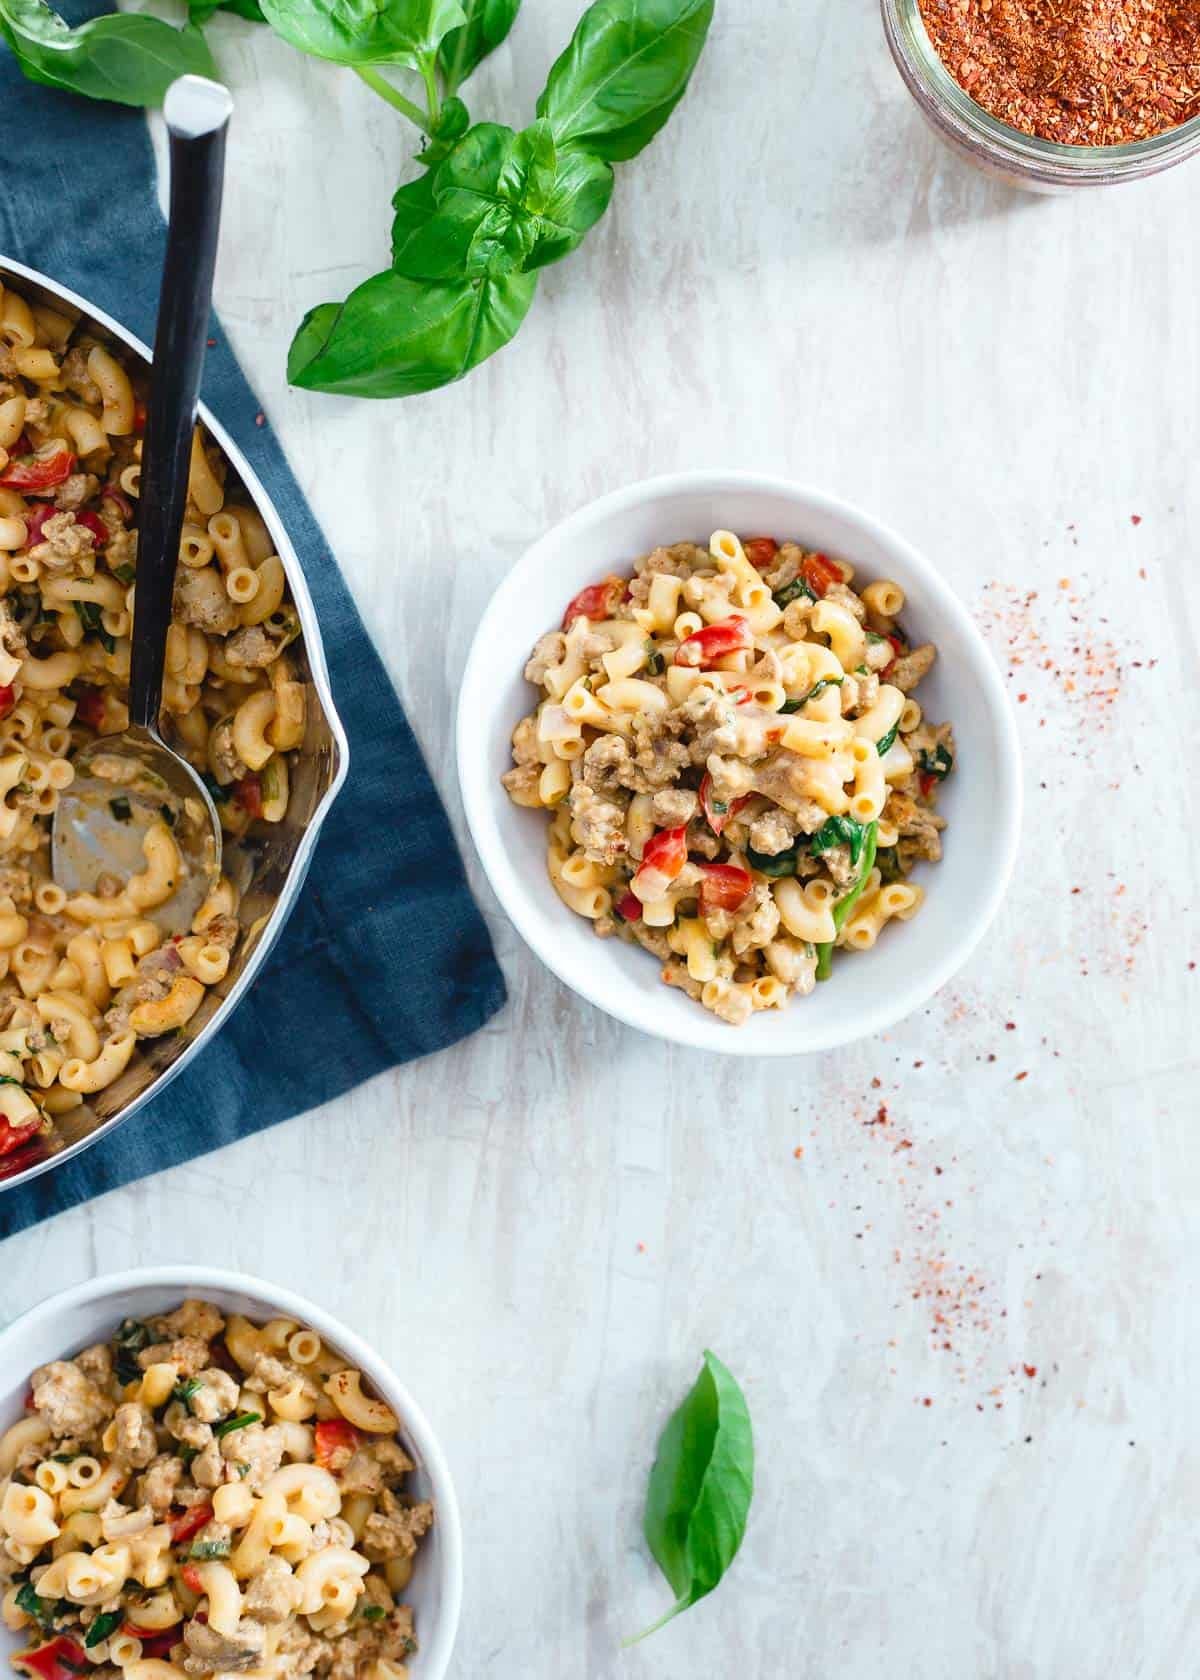 Filled with spinach and peppers and tossed in a creamy read cheddar cheese sauce, this turkey skillet mac and cheese is an easy weeknight dinner everyone will love.